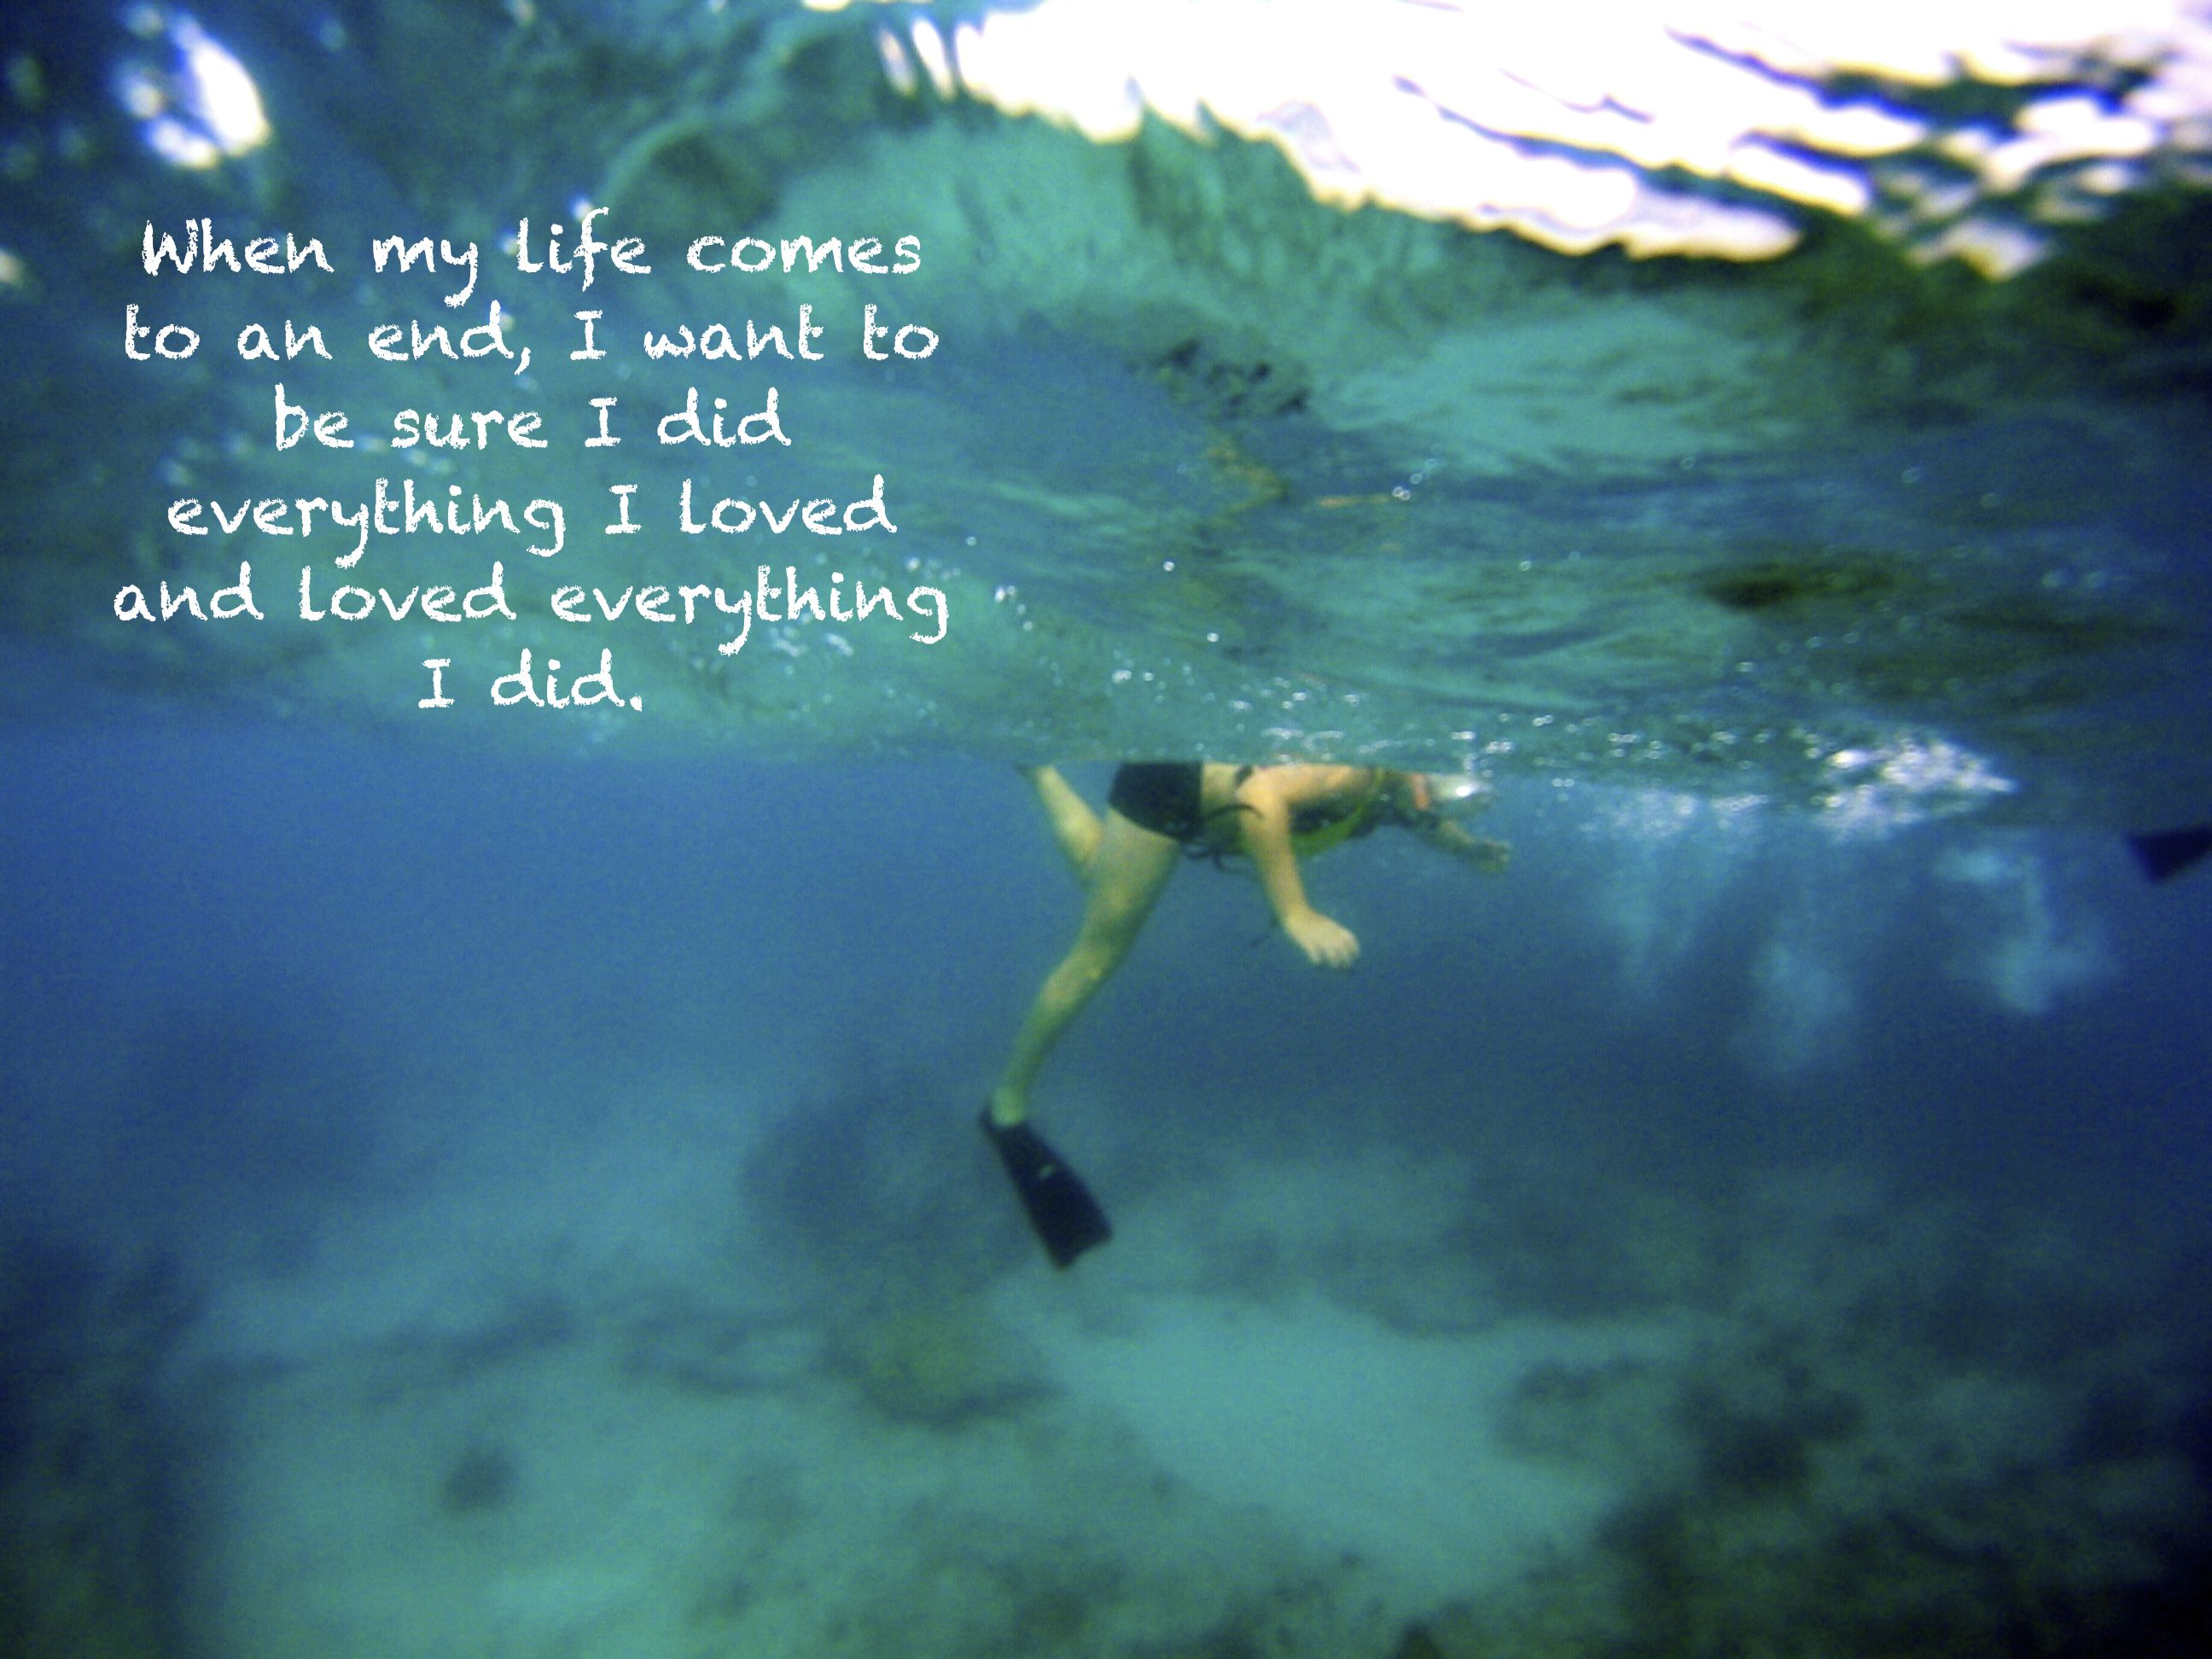 bucket list quotes - Google Search | Bucket list quotes ...